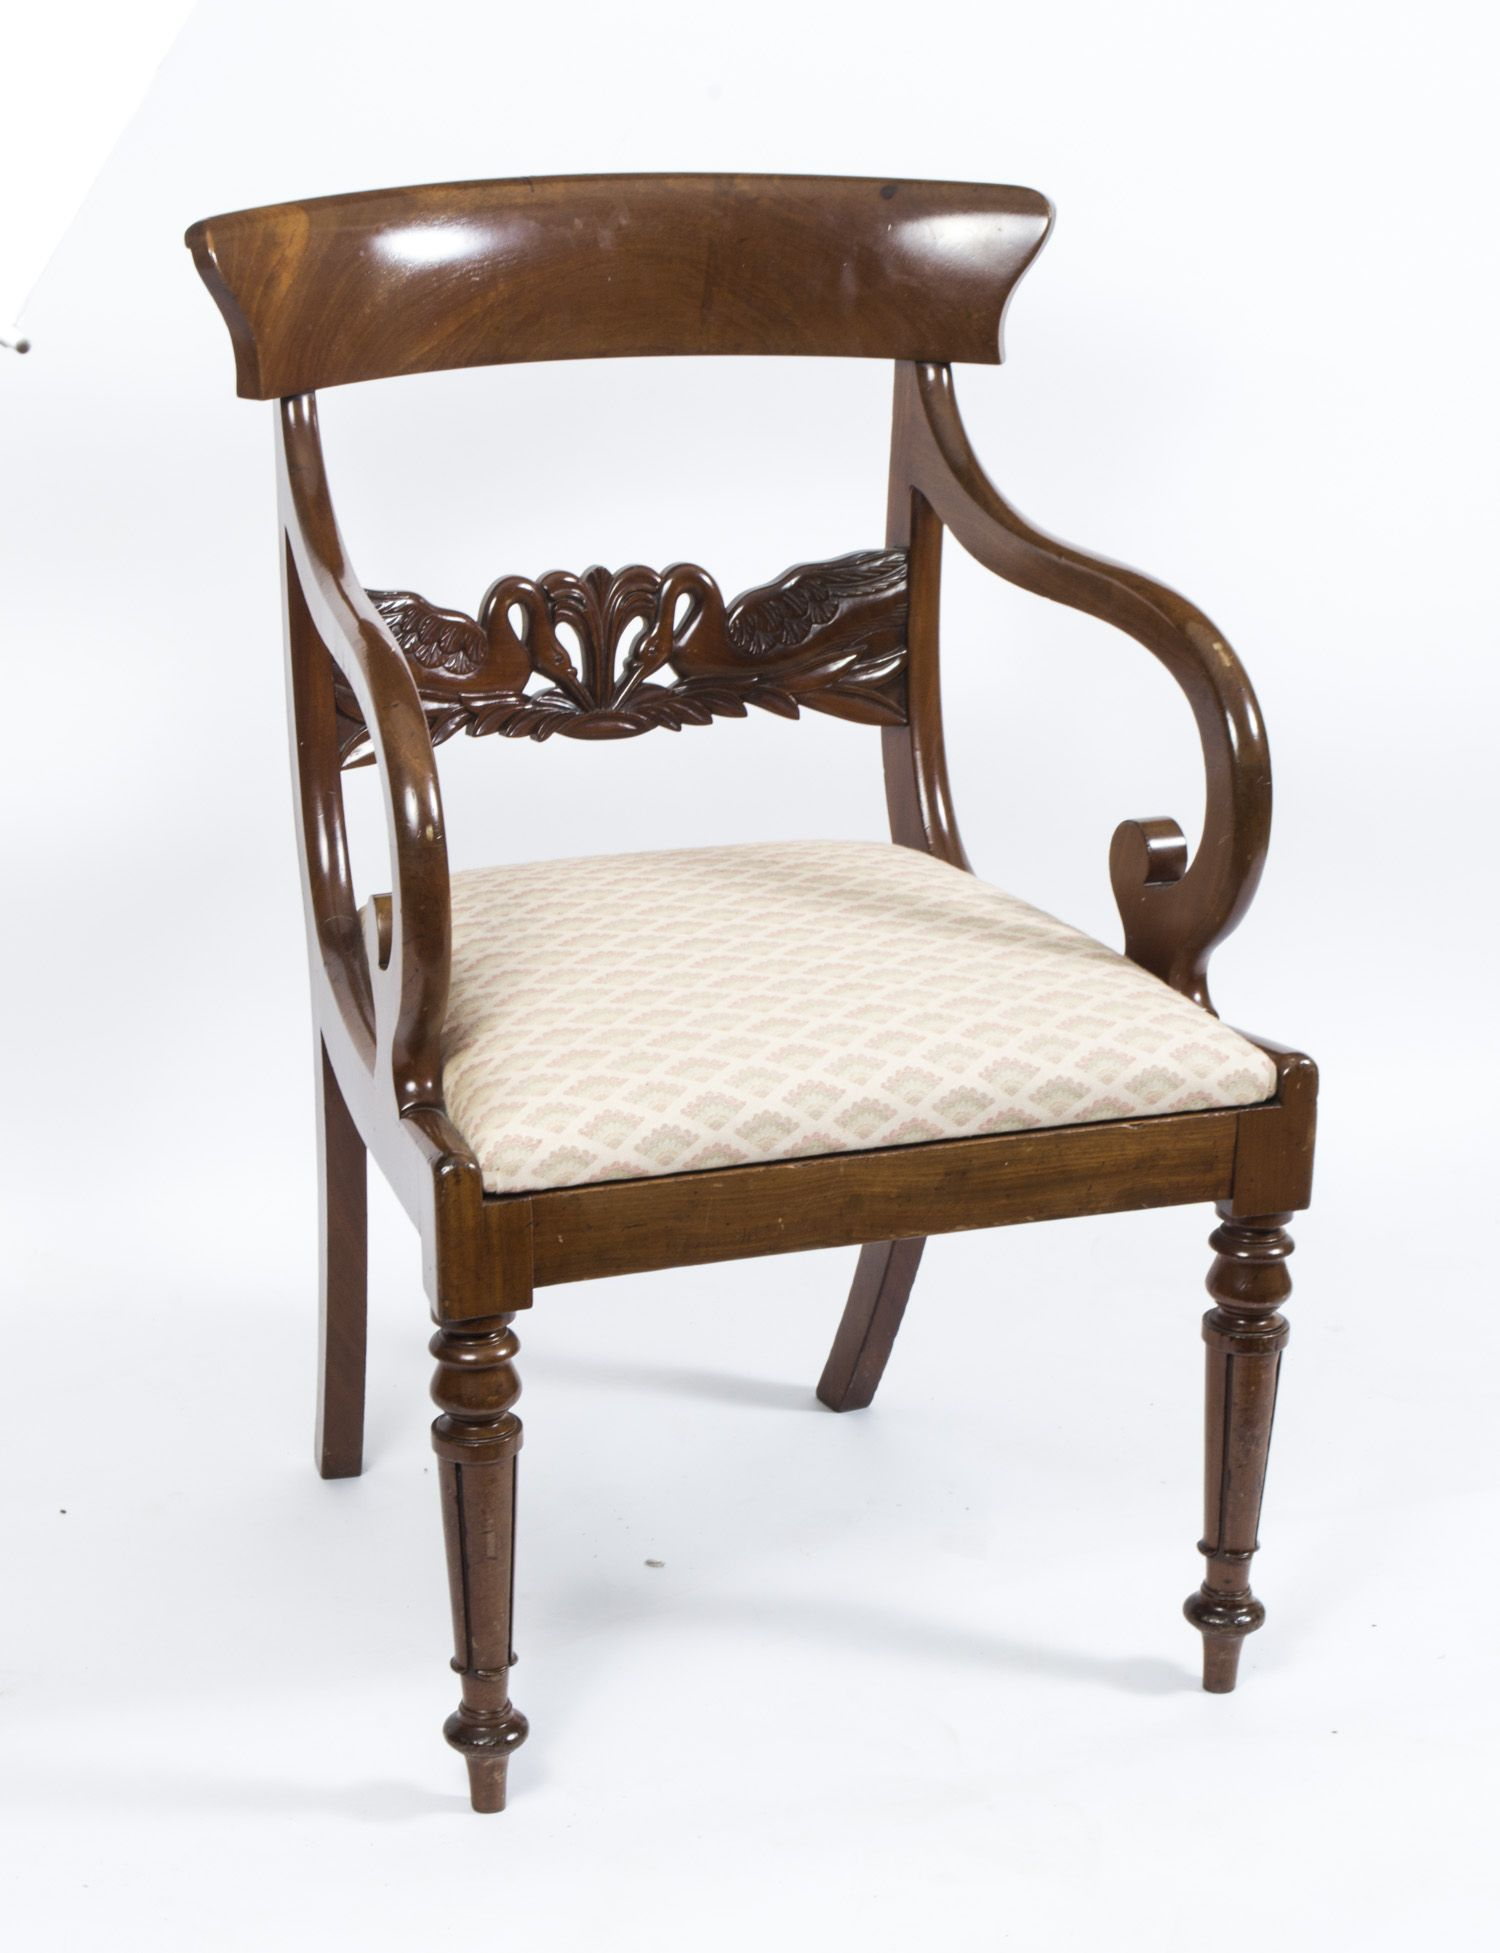 An Antique English Regency Swan Carved Armchair Circa 1820